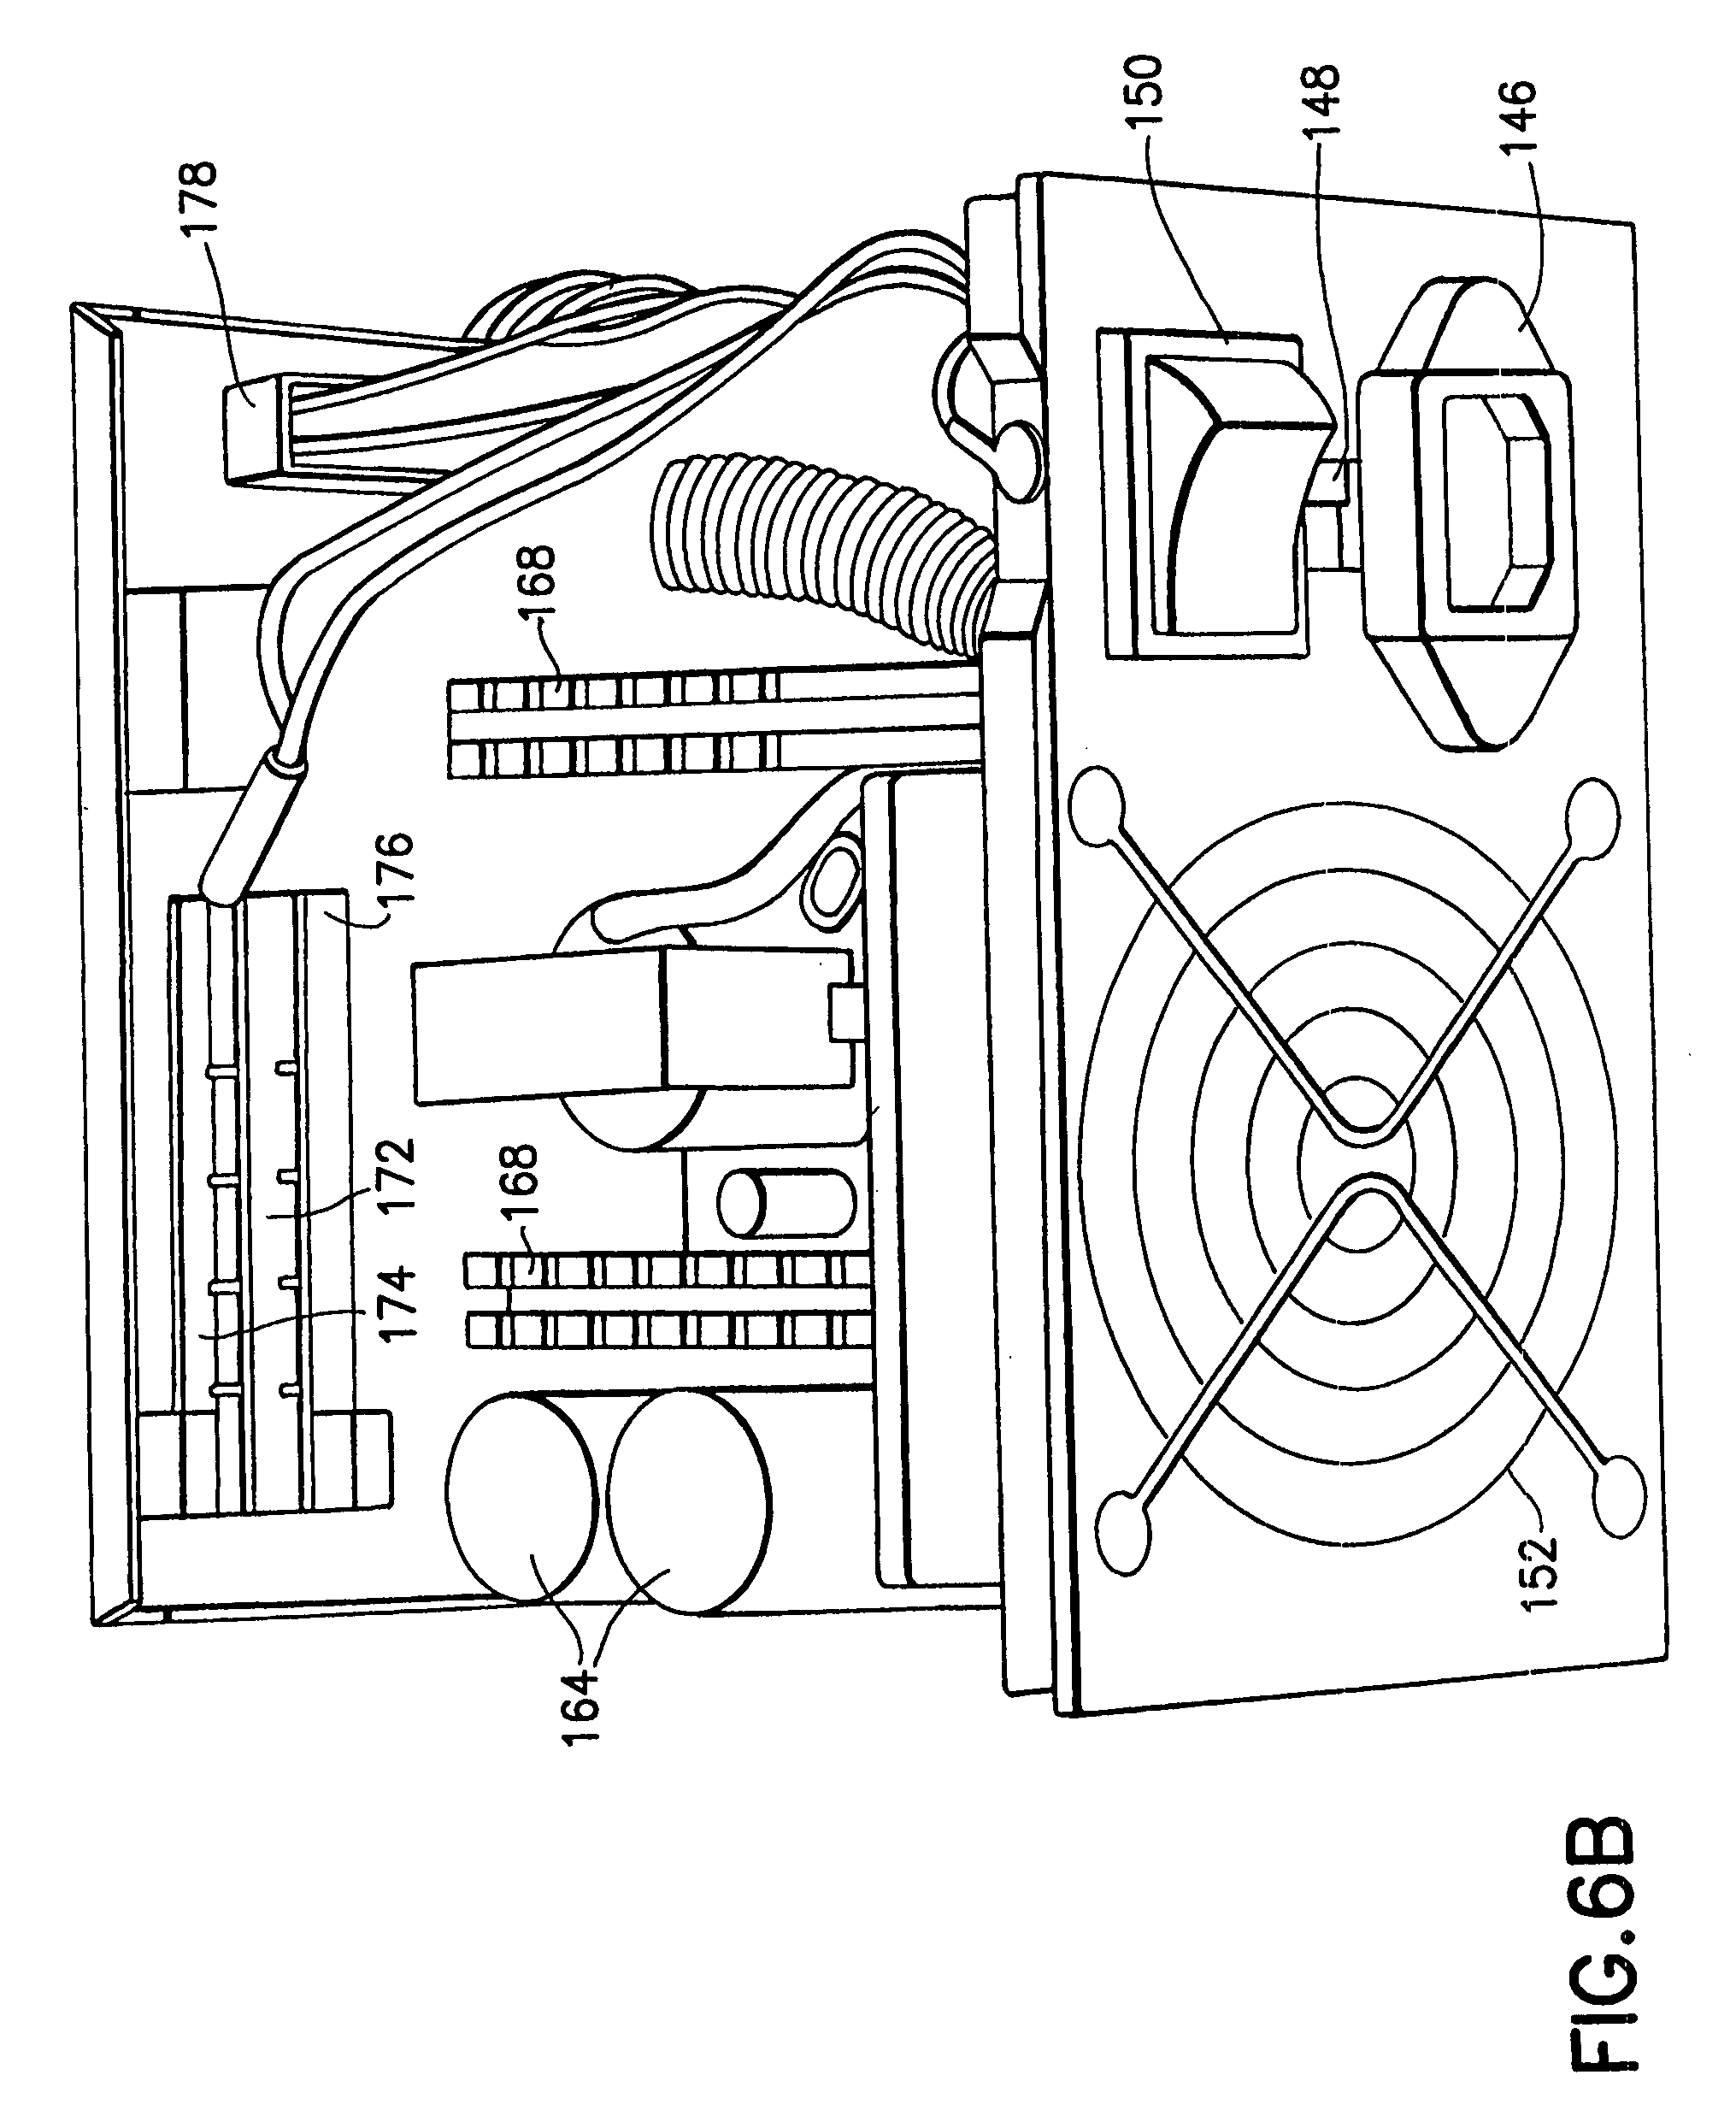 Power supply drawing at getdrawings free for personal use